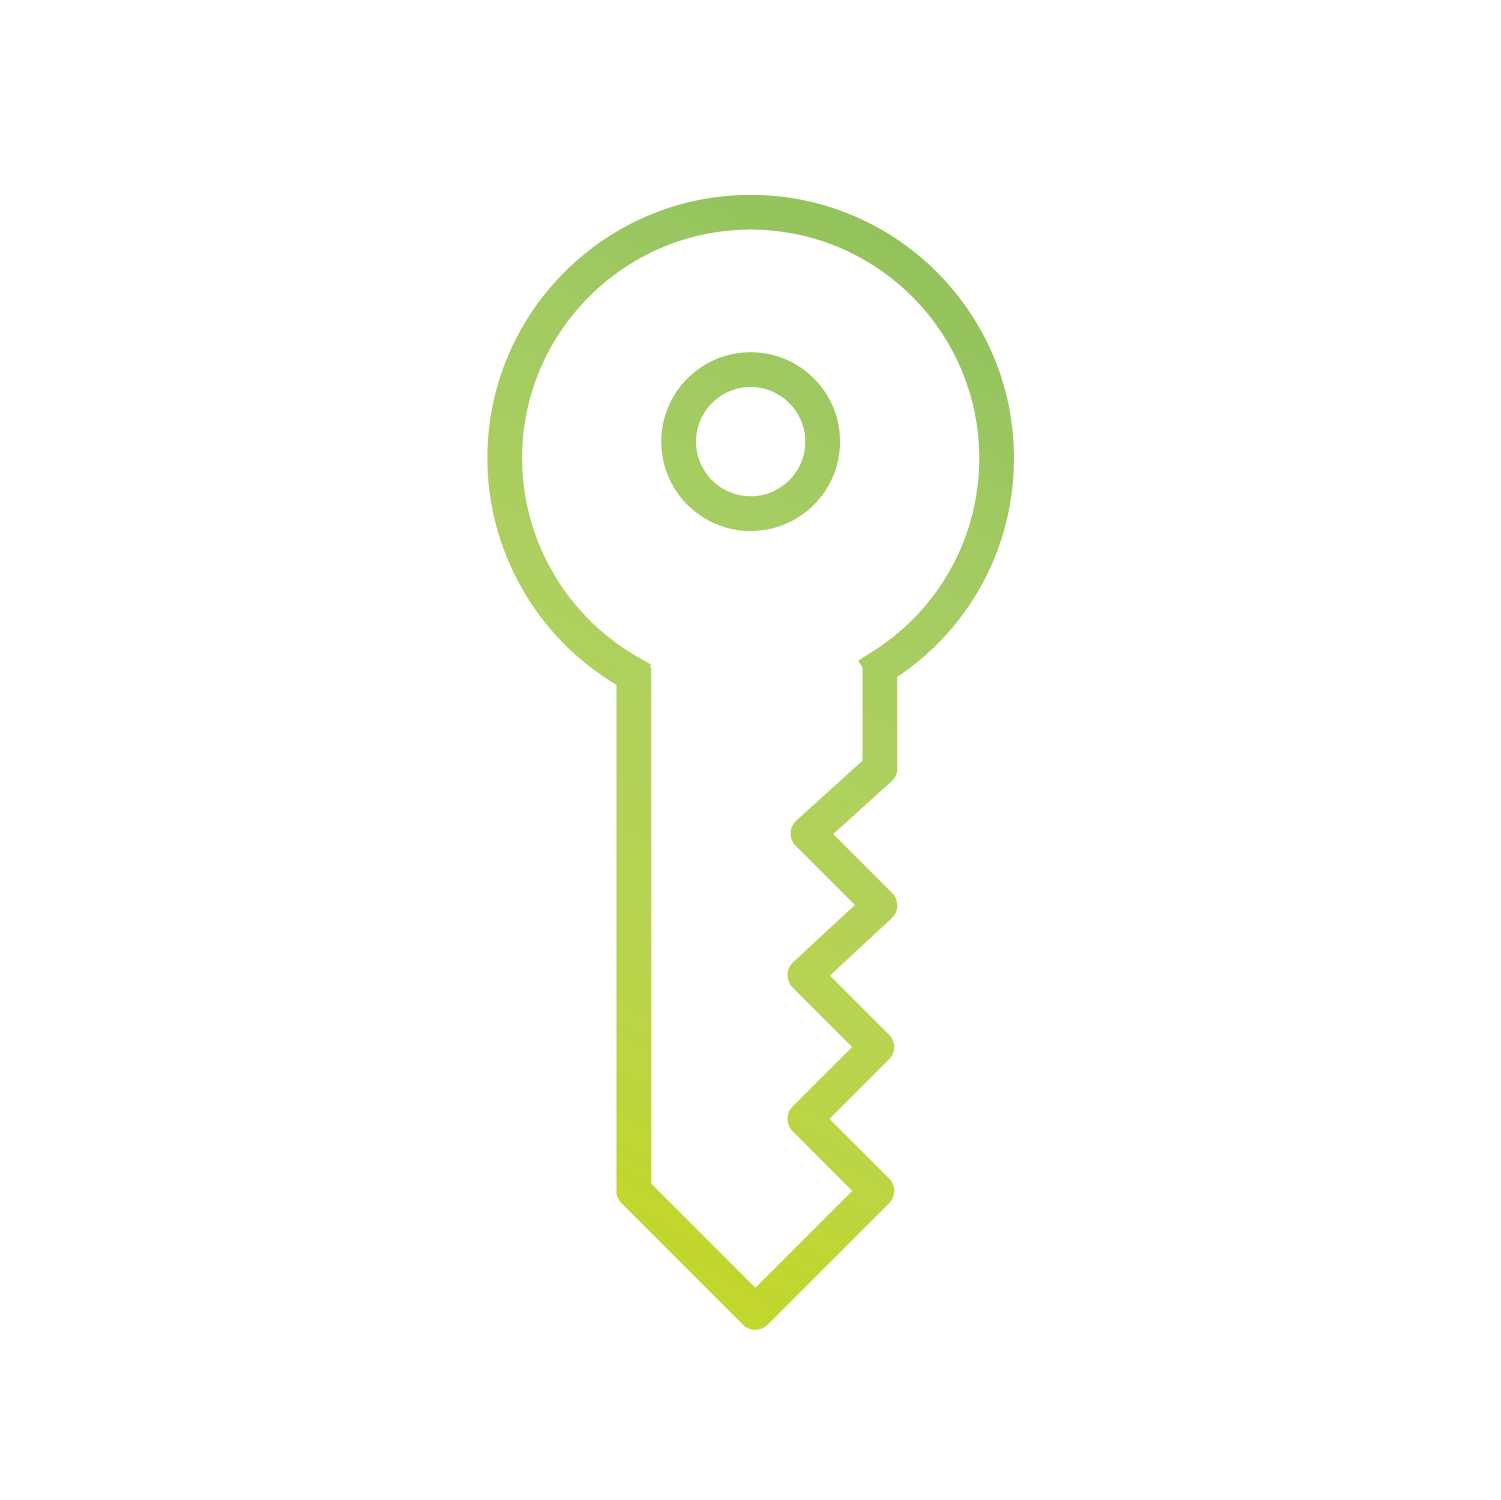 Green icon of a key